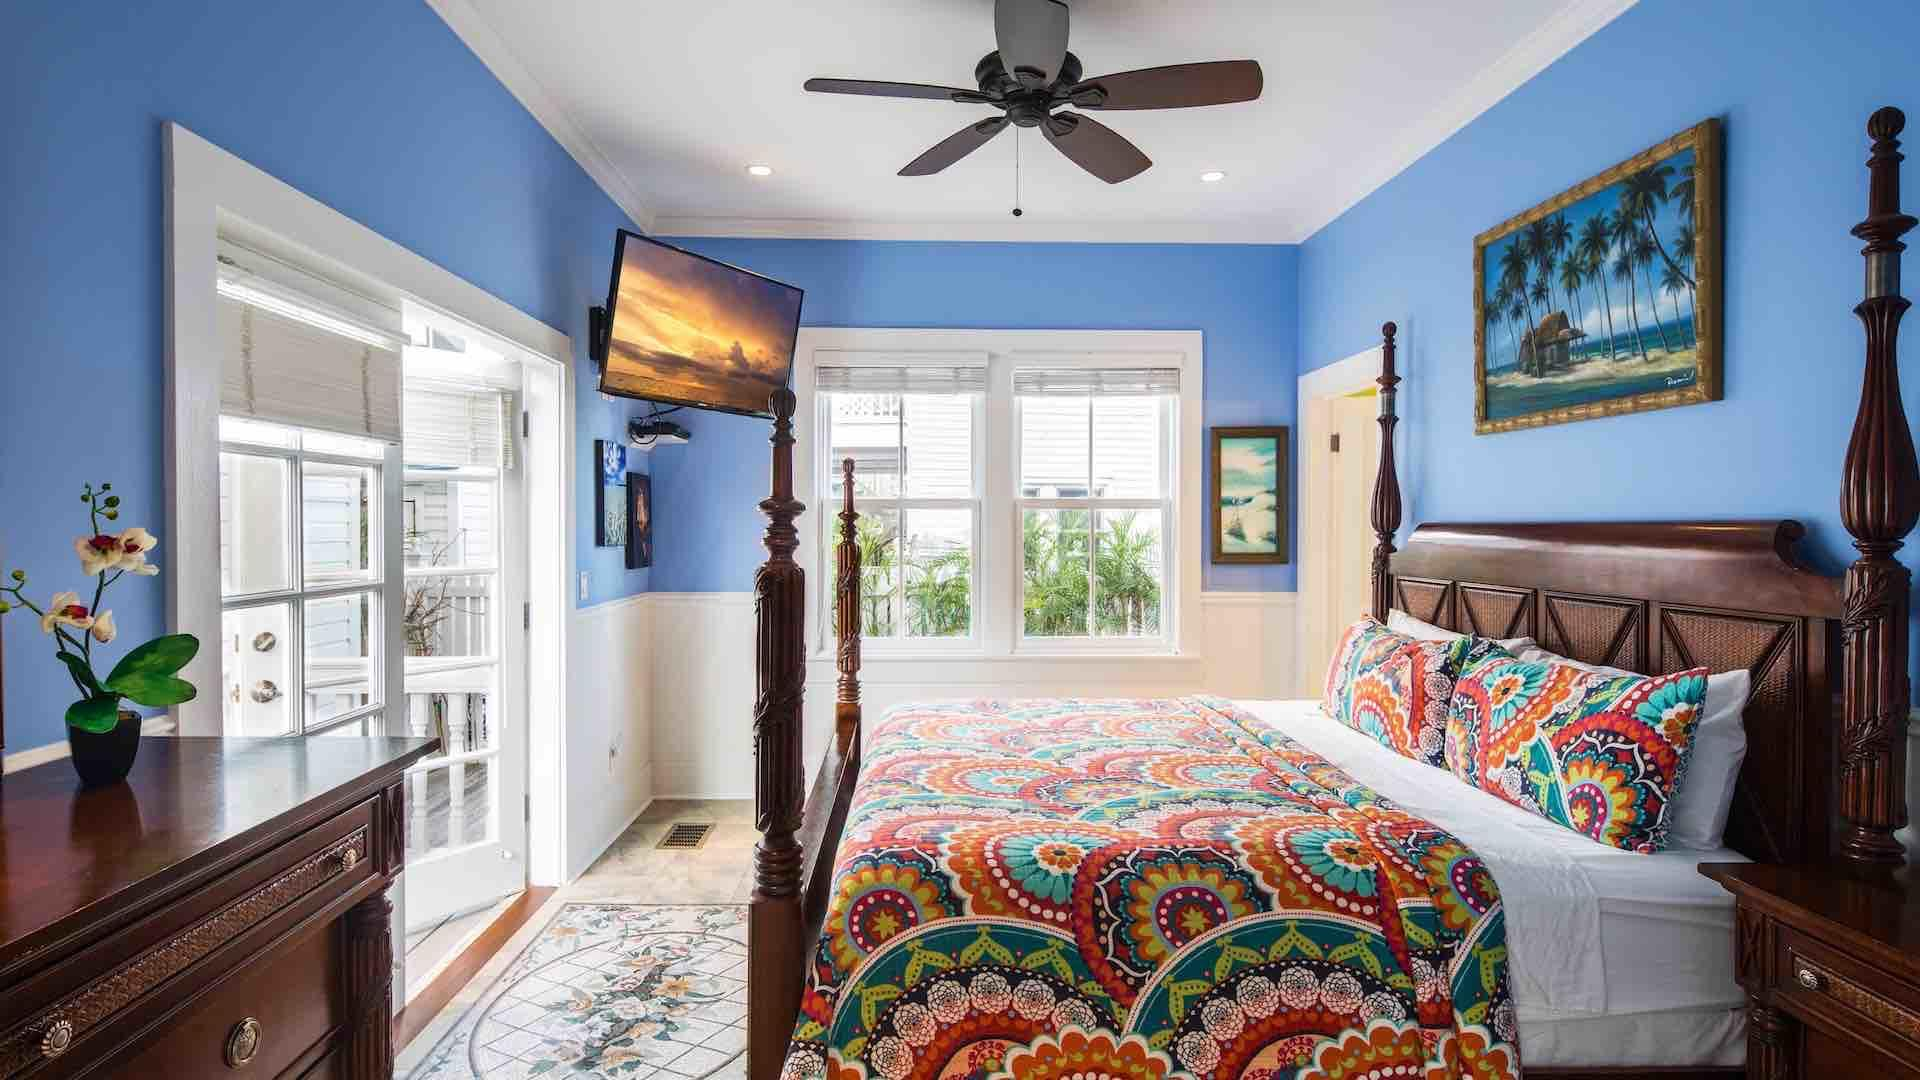 The Master Suite is located on the first floor, with a King bed and flat screen TV...